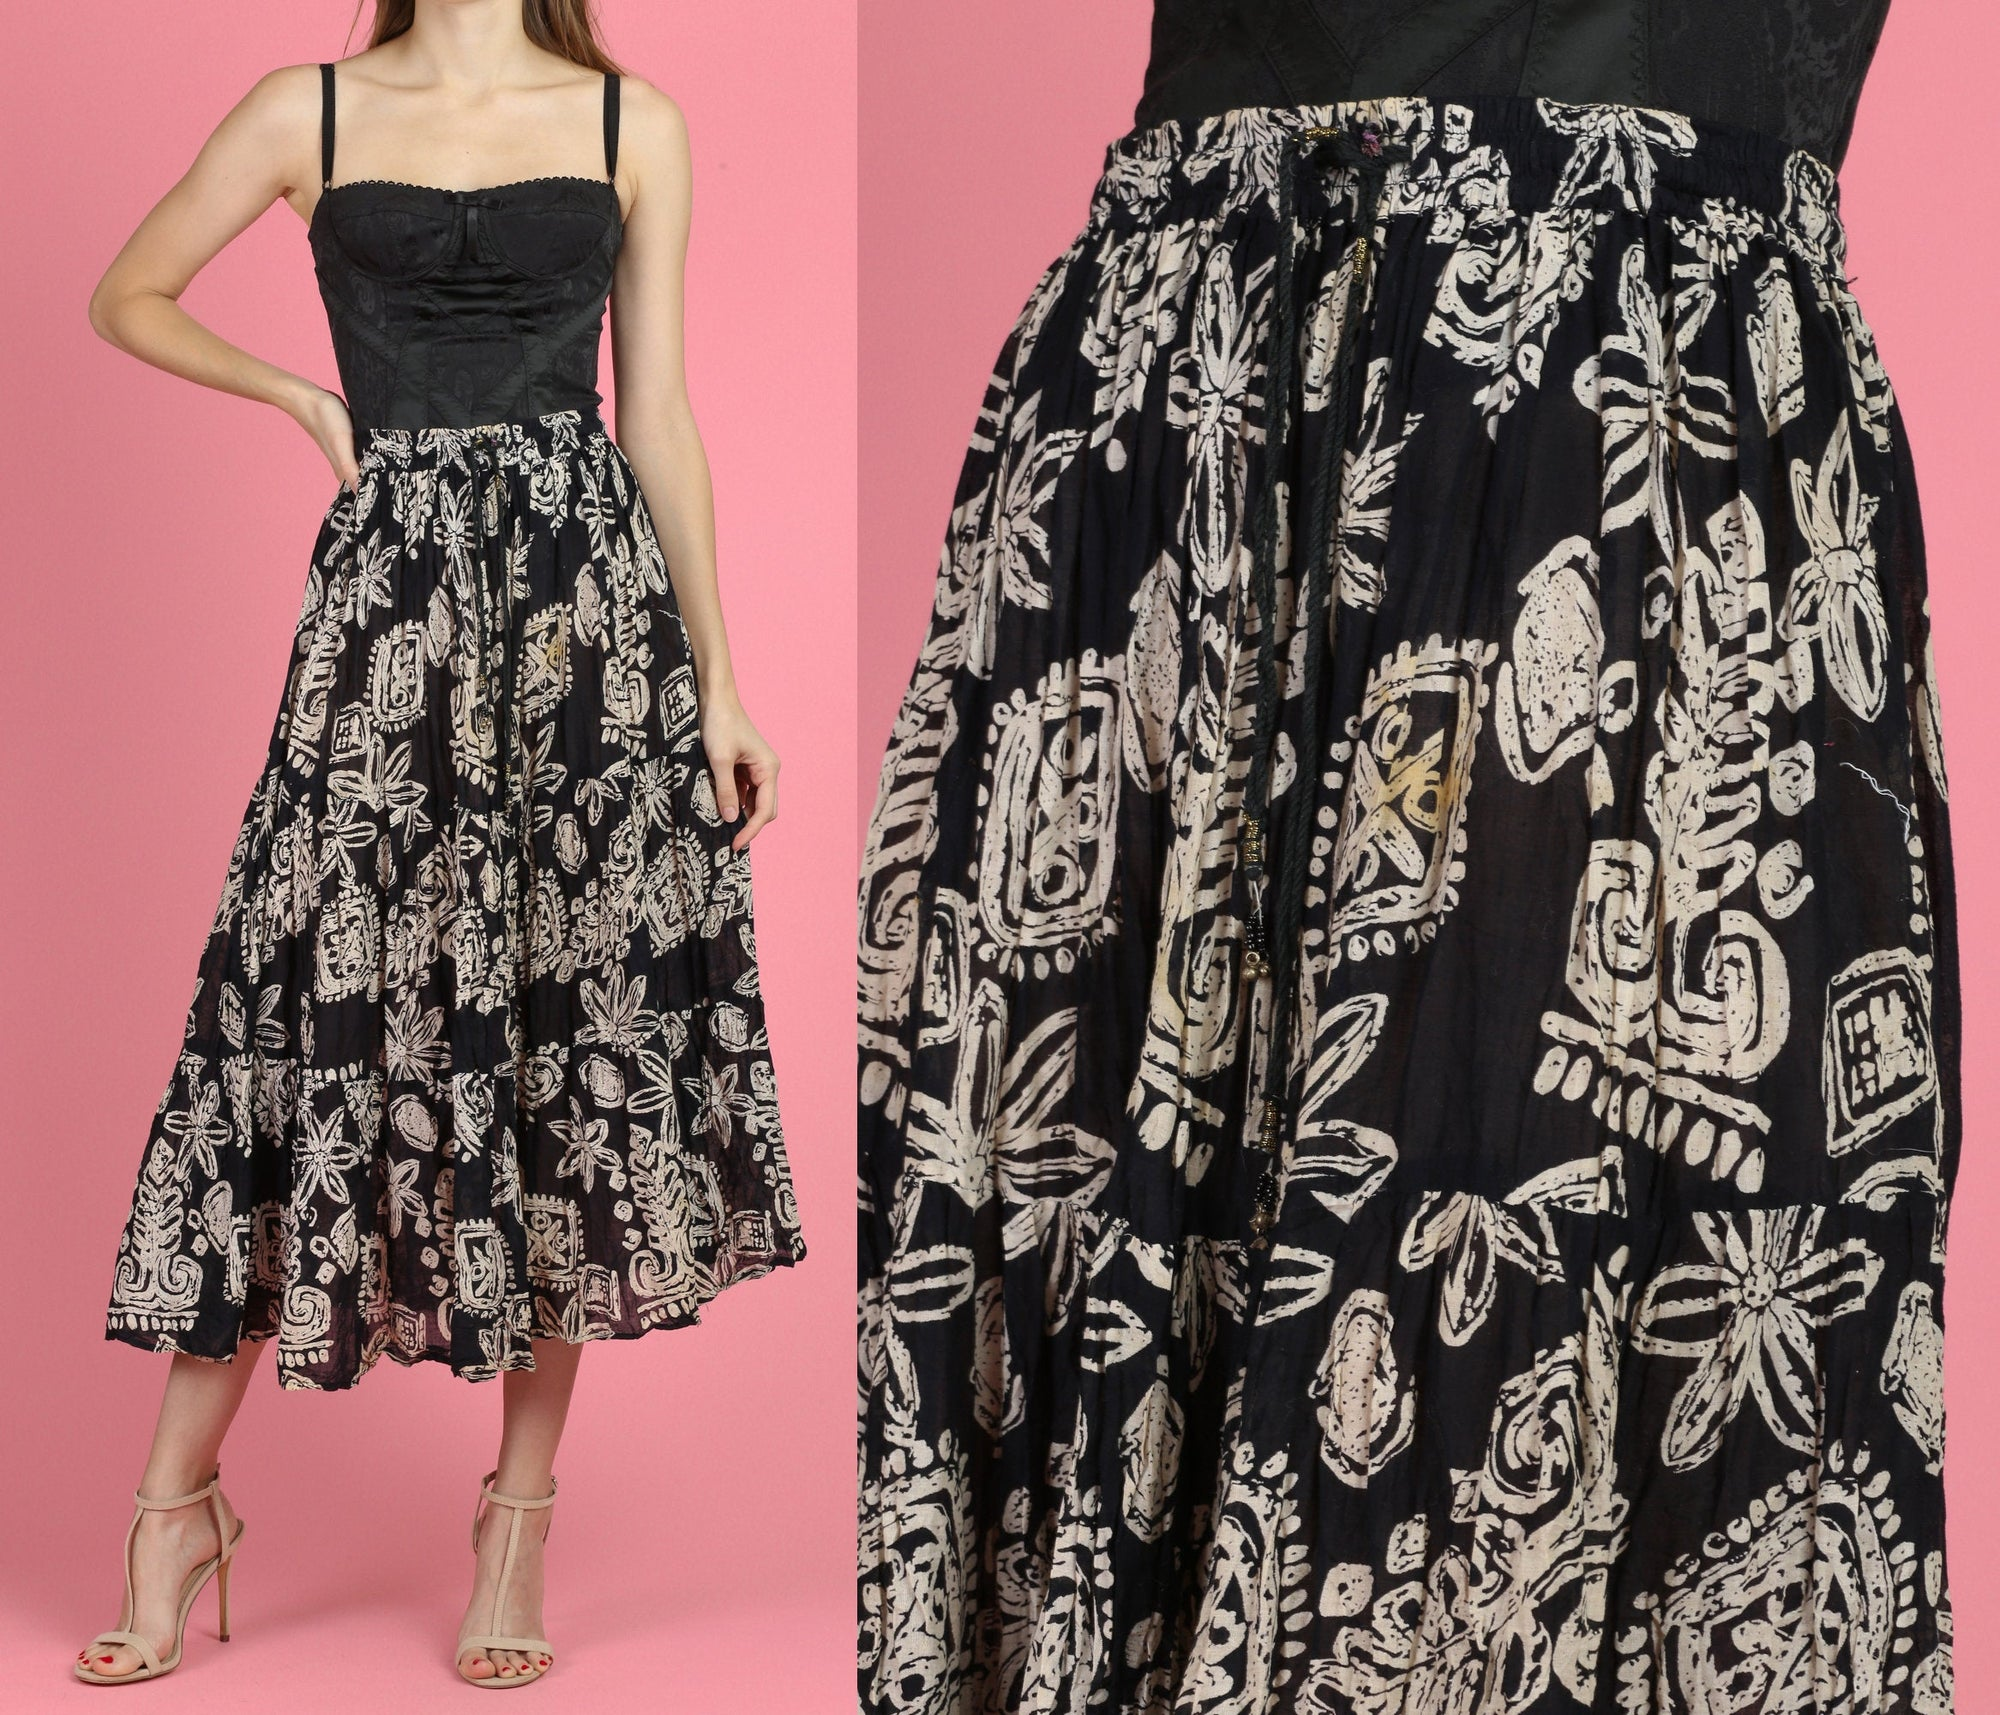 90s Boho Black & White Broomstick Skirt - Small to Medium